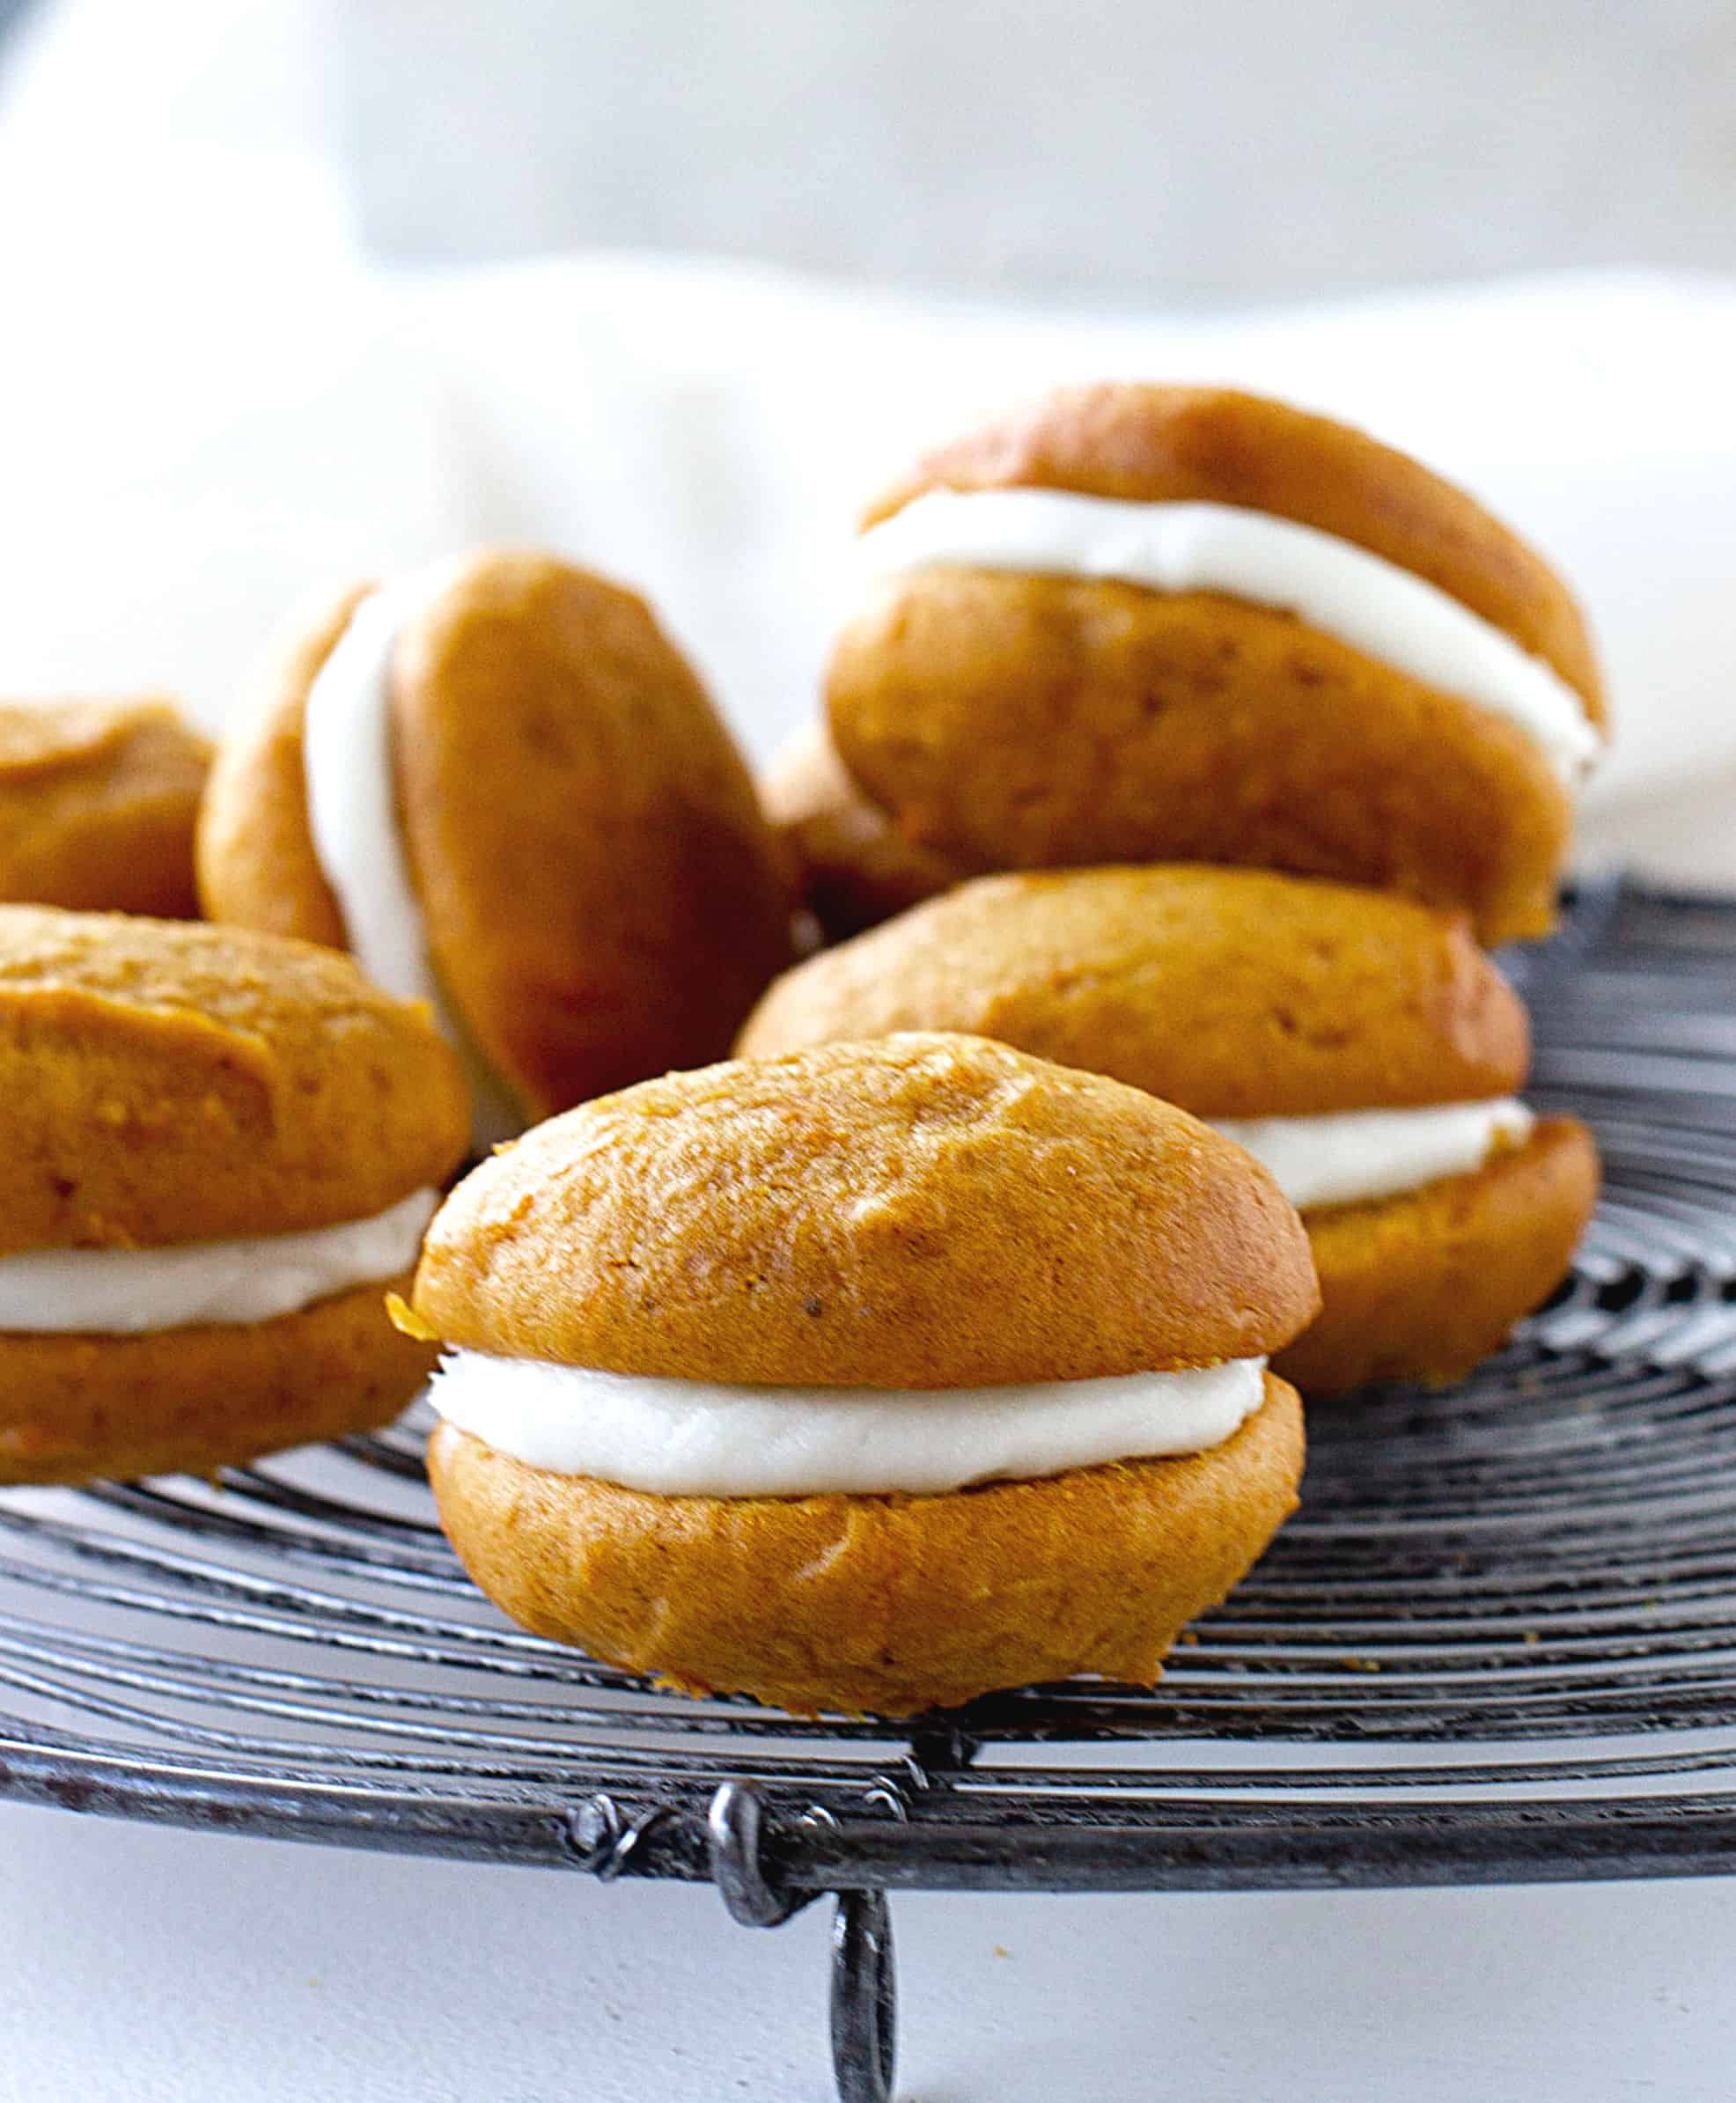 Several pumpkin whoopie pies on a dark wire rack, grey background